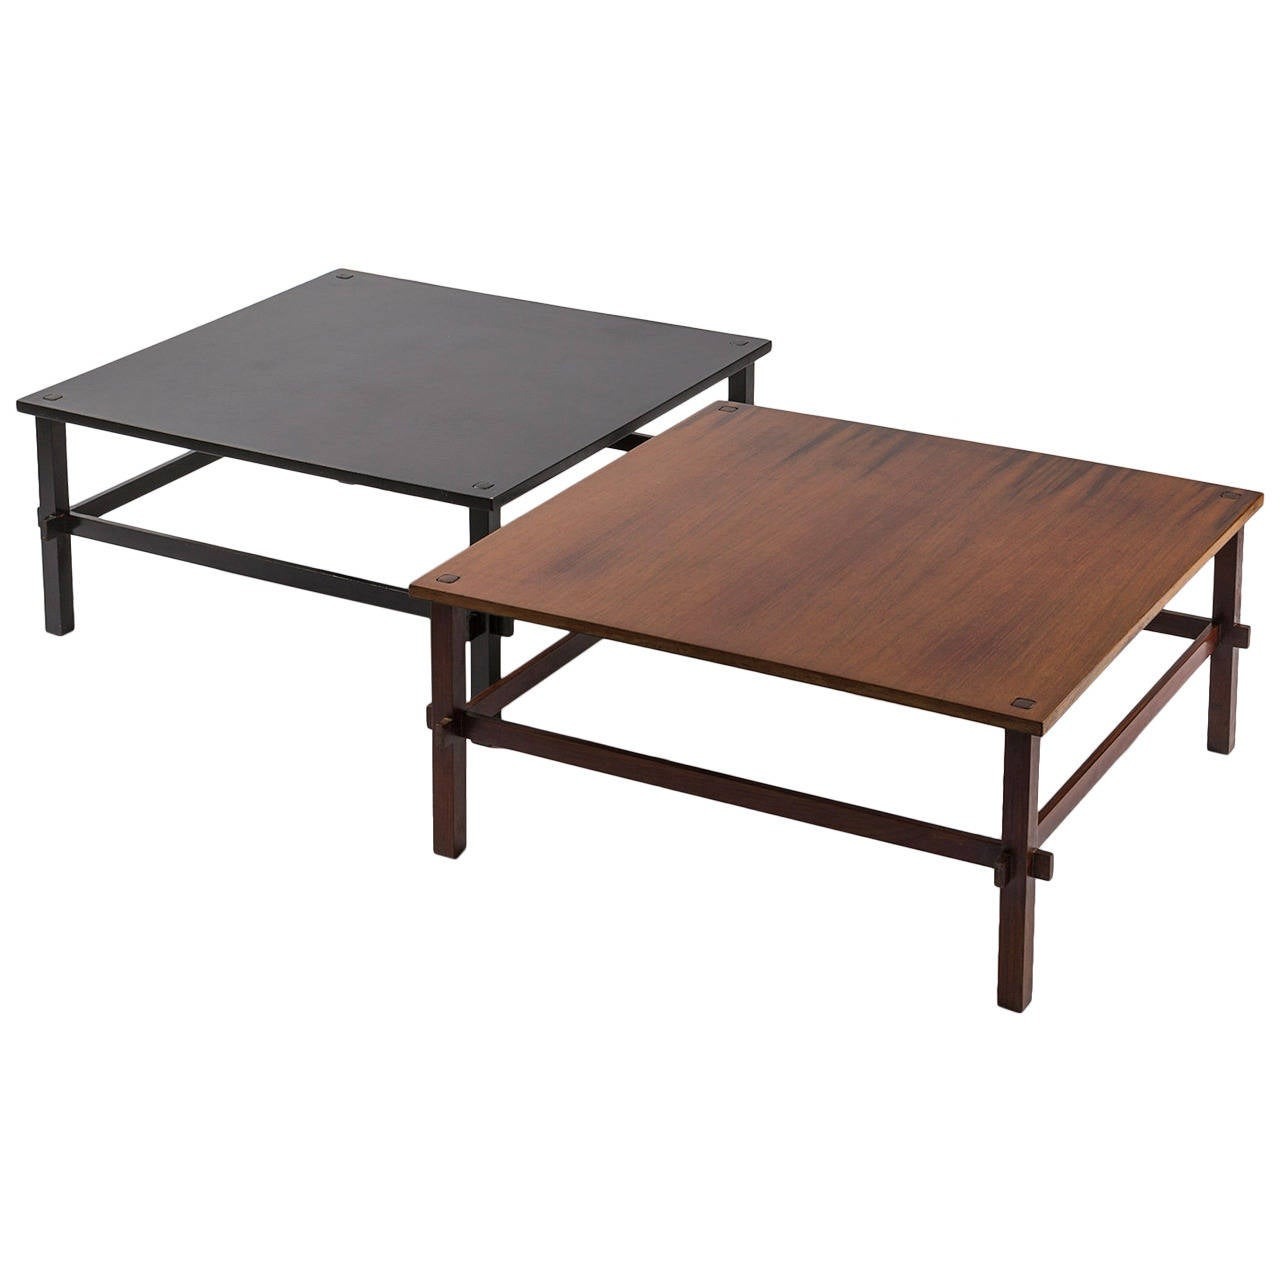 Pair Of Coffee Tables Model 740 By Gianfranco Frattini For Cassina For Sale At 1stdibs